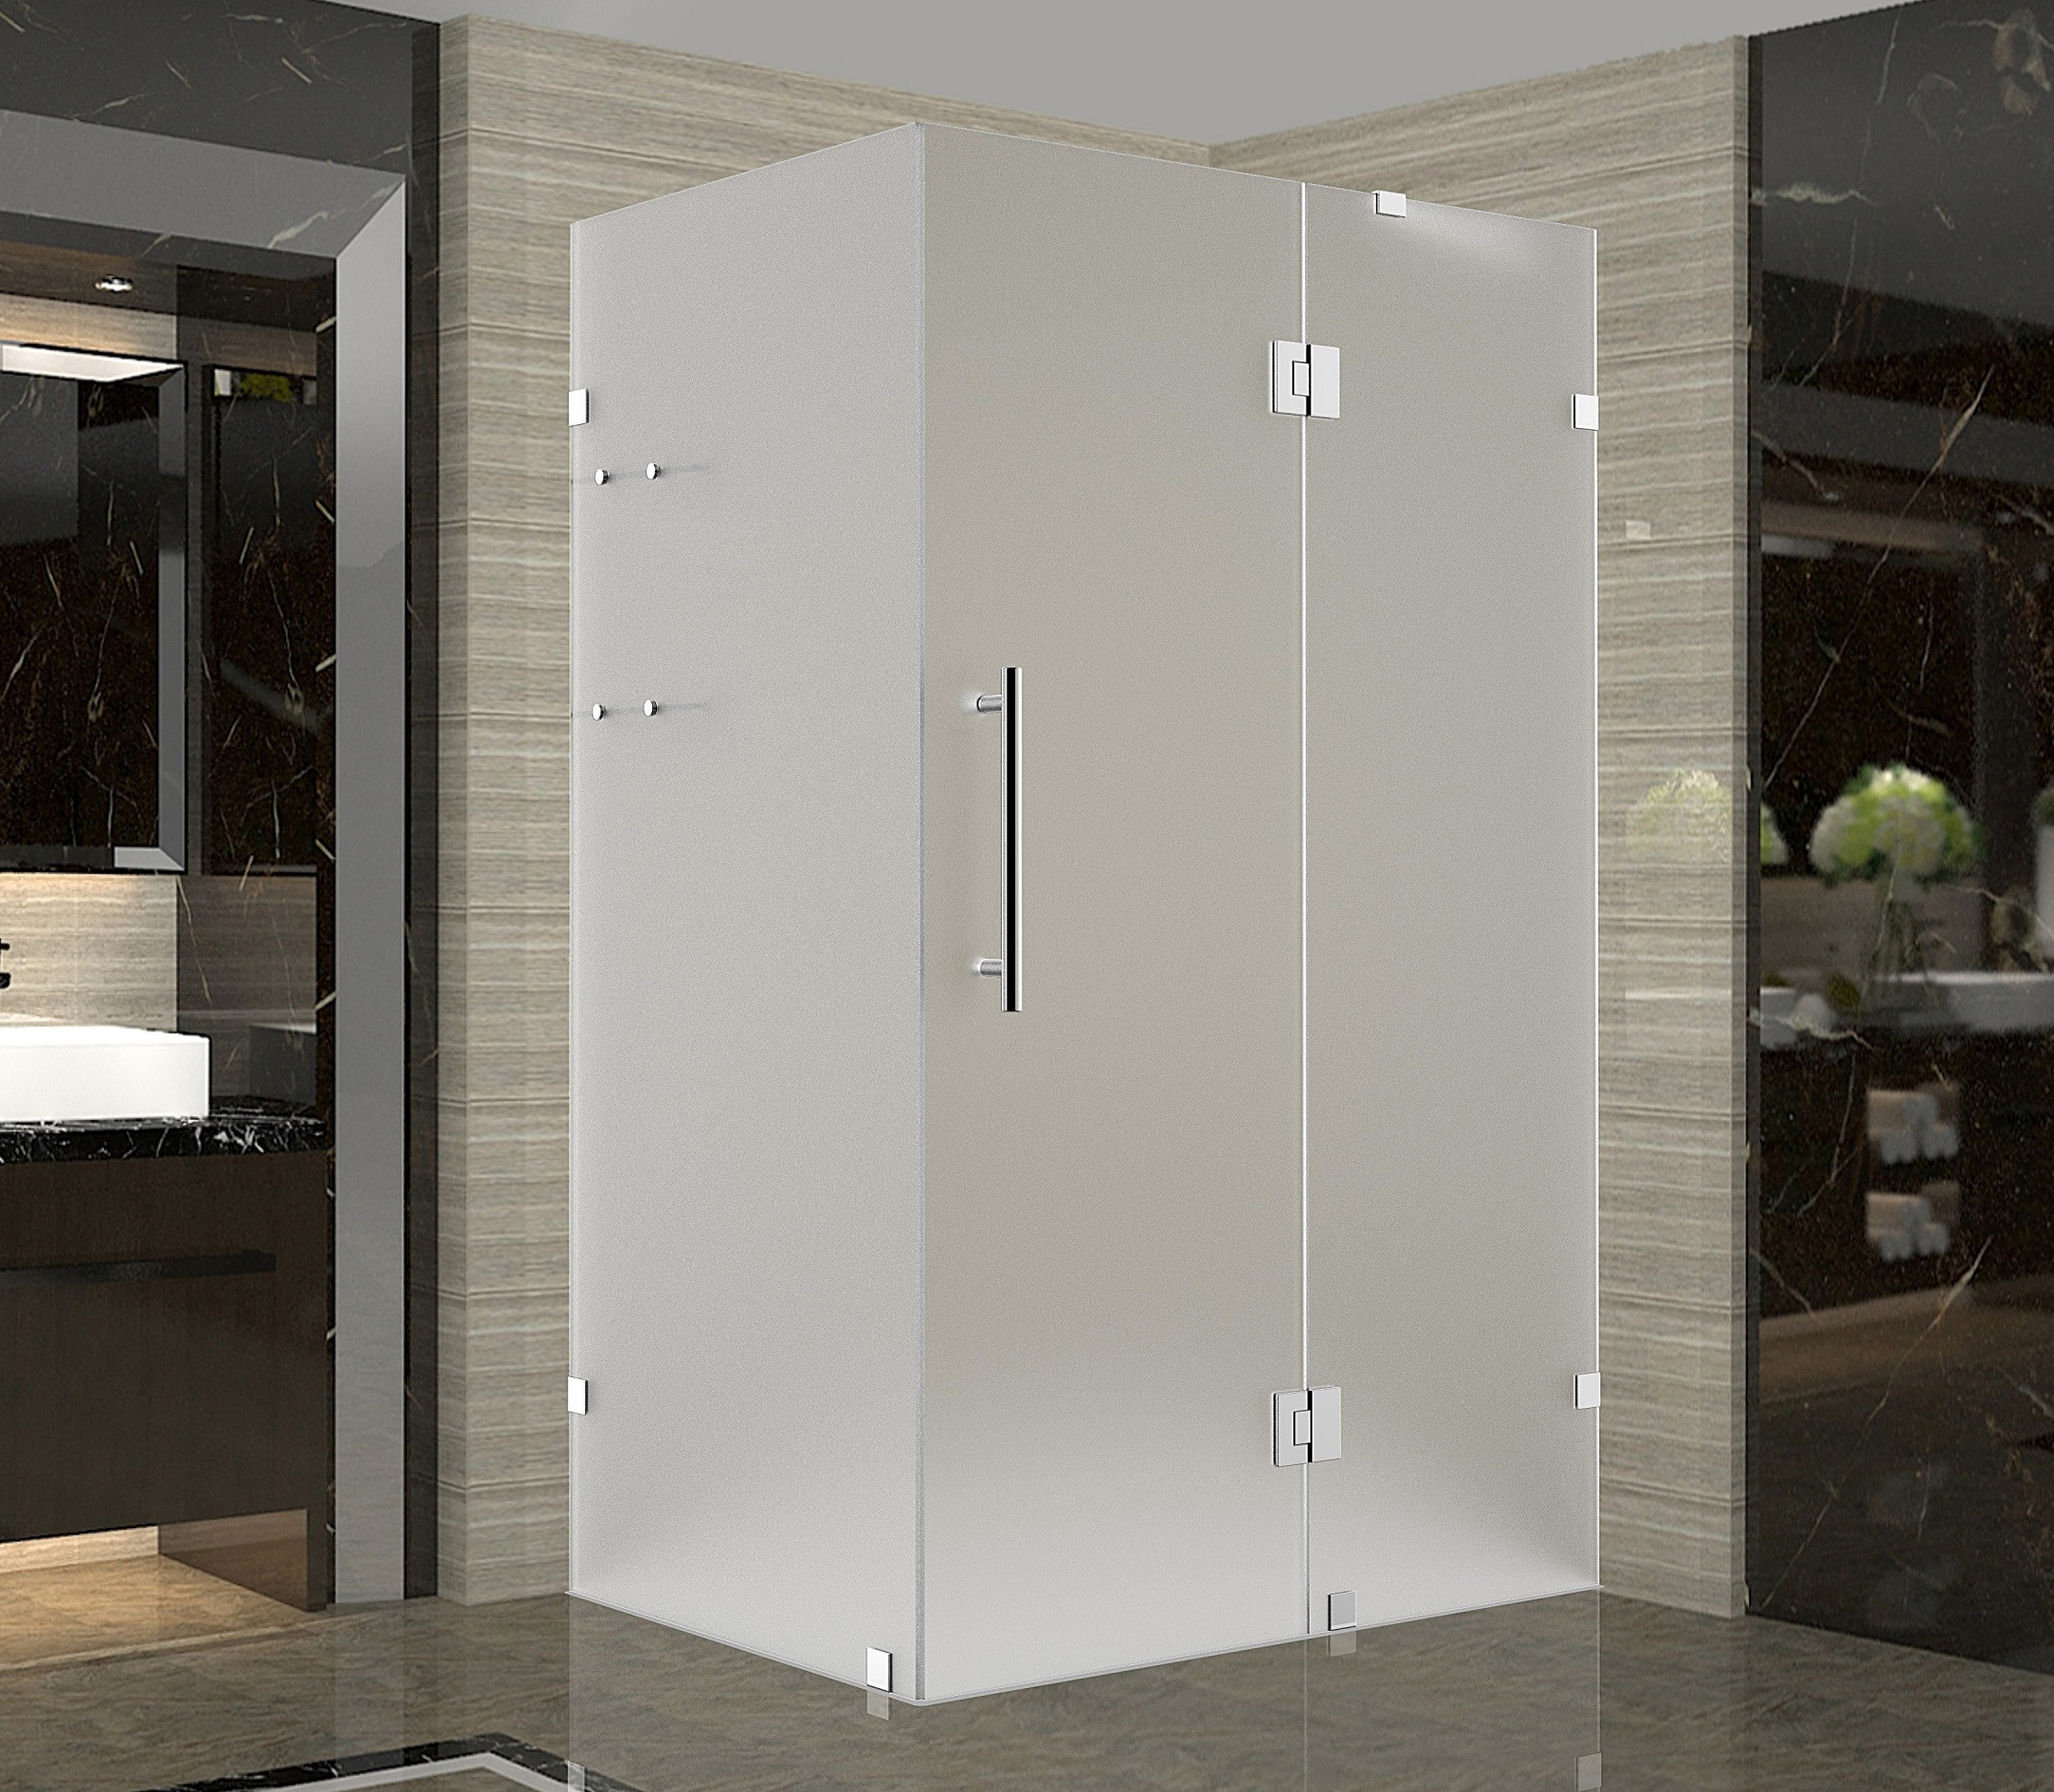 Aston Global SEN992F-CH-3434-10 Chrome Completely Frameless Frosted Shower Enclosure with Shelves